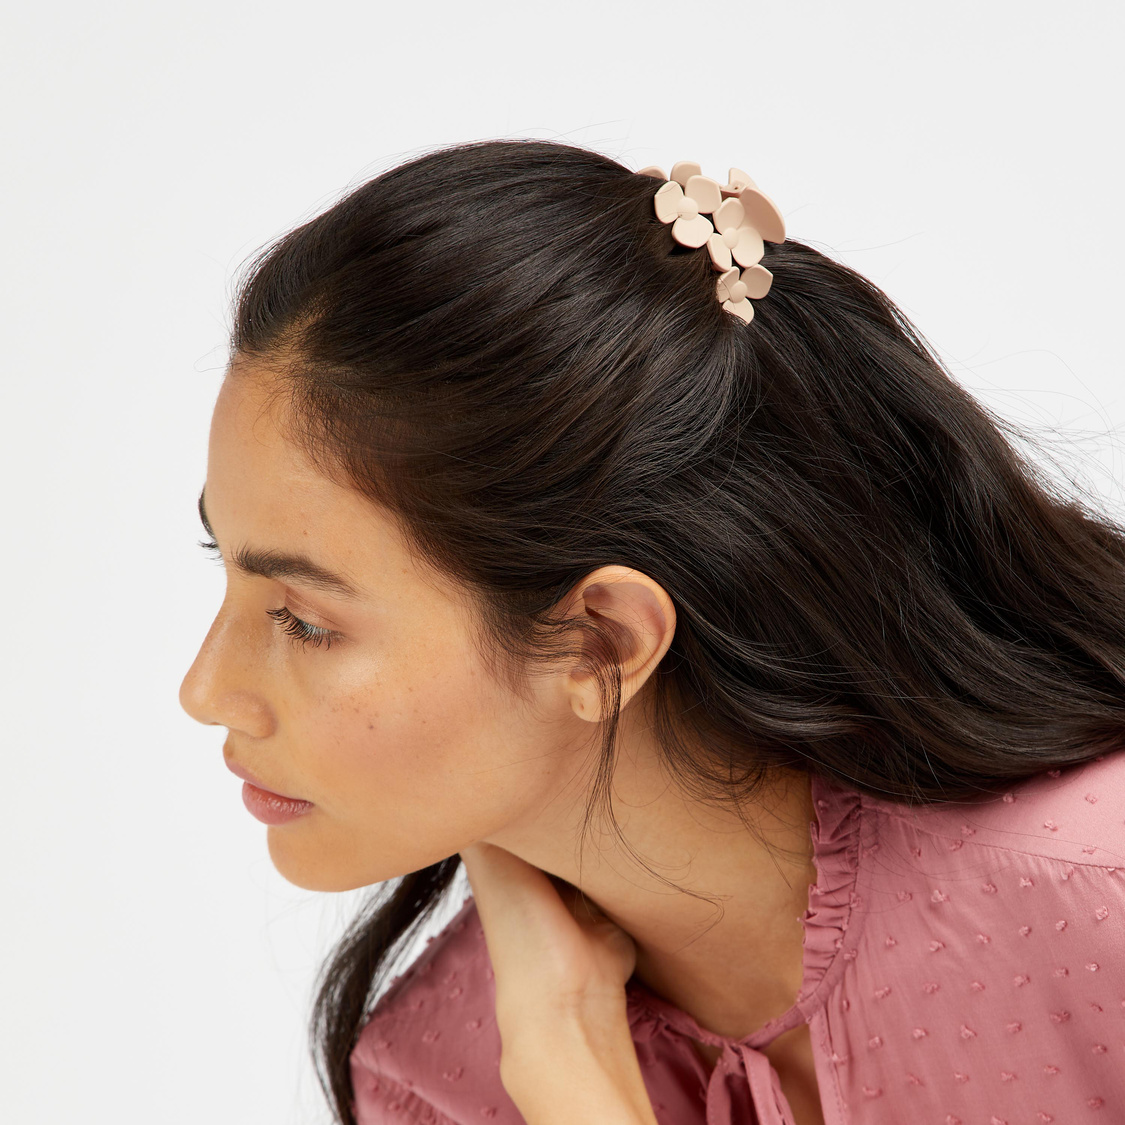 Set of 3 - Solid Clamp Hair Clip